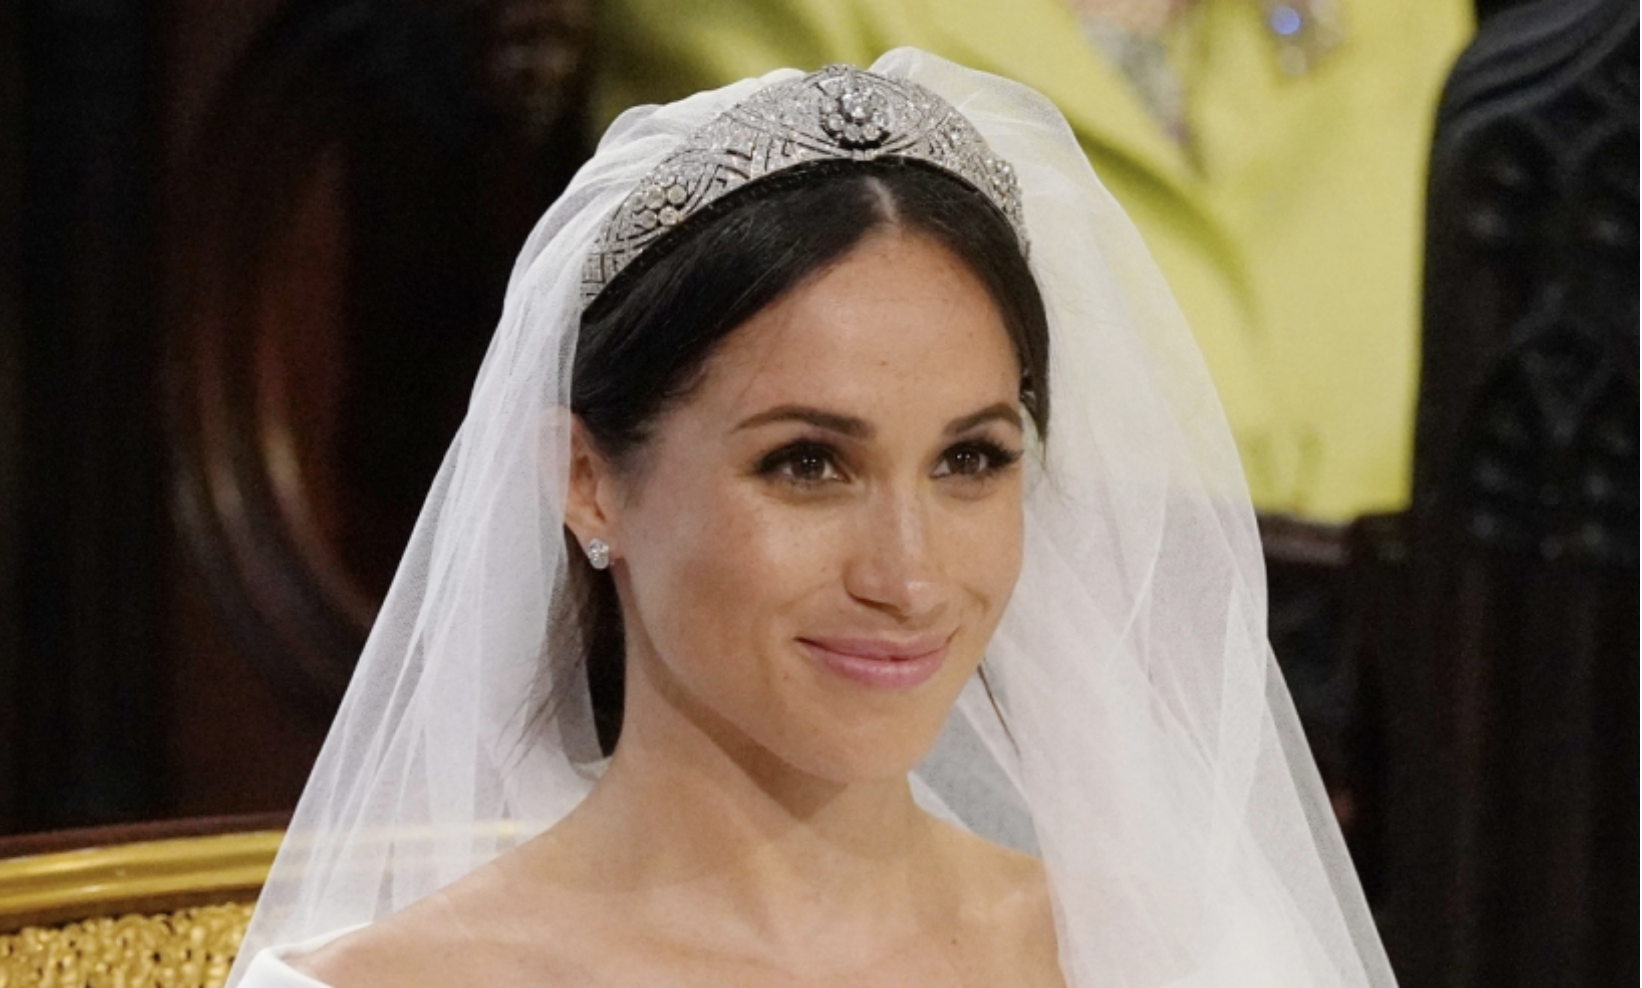 Meghan Markle's fresh face on her wedding day